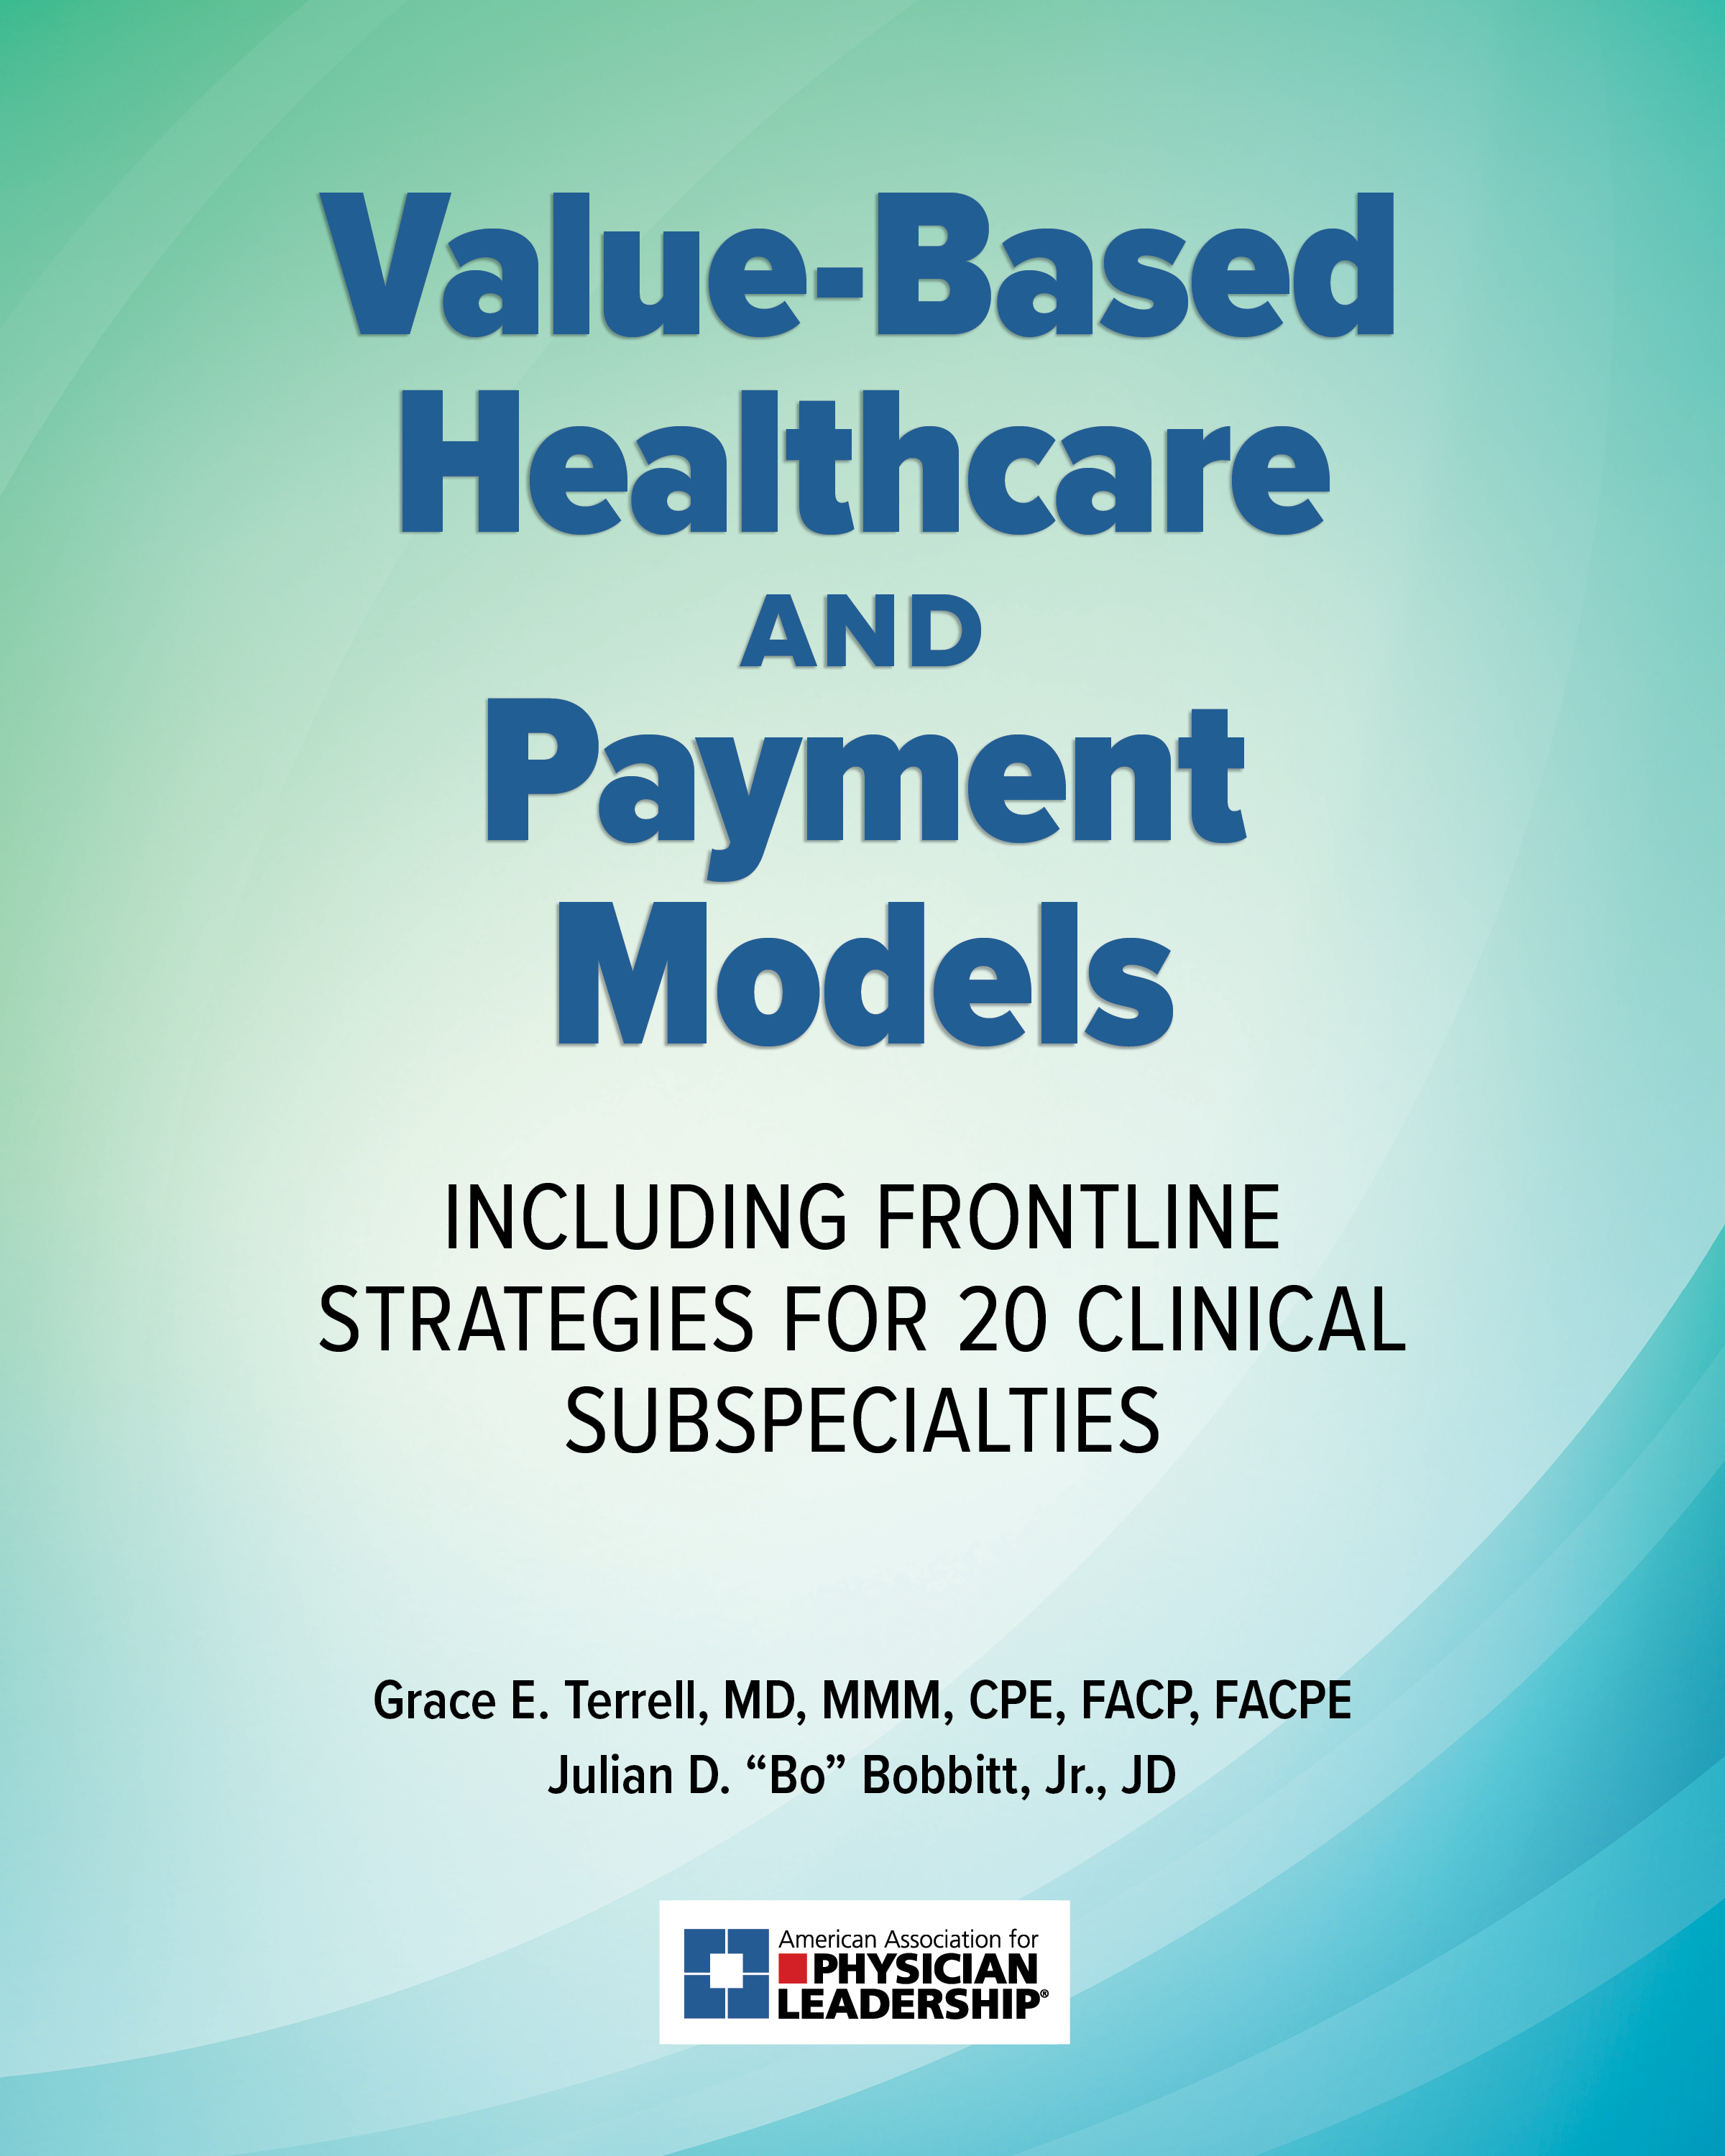 Development of Care Models – Value-Based Healthcare and Payment Models